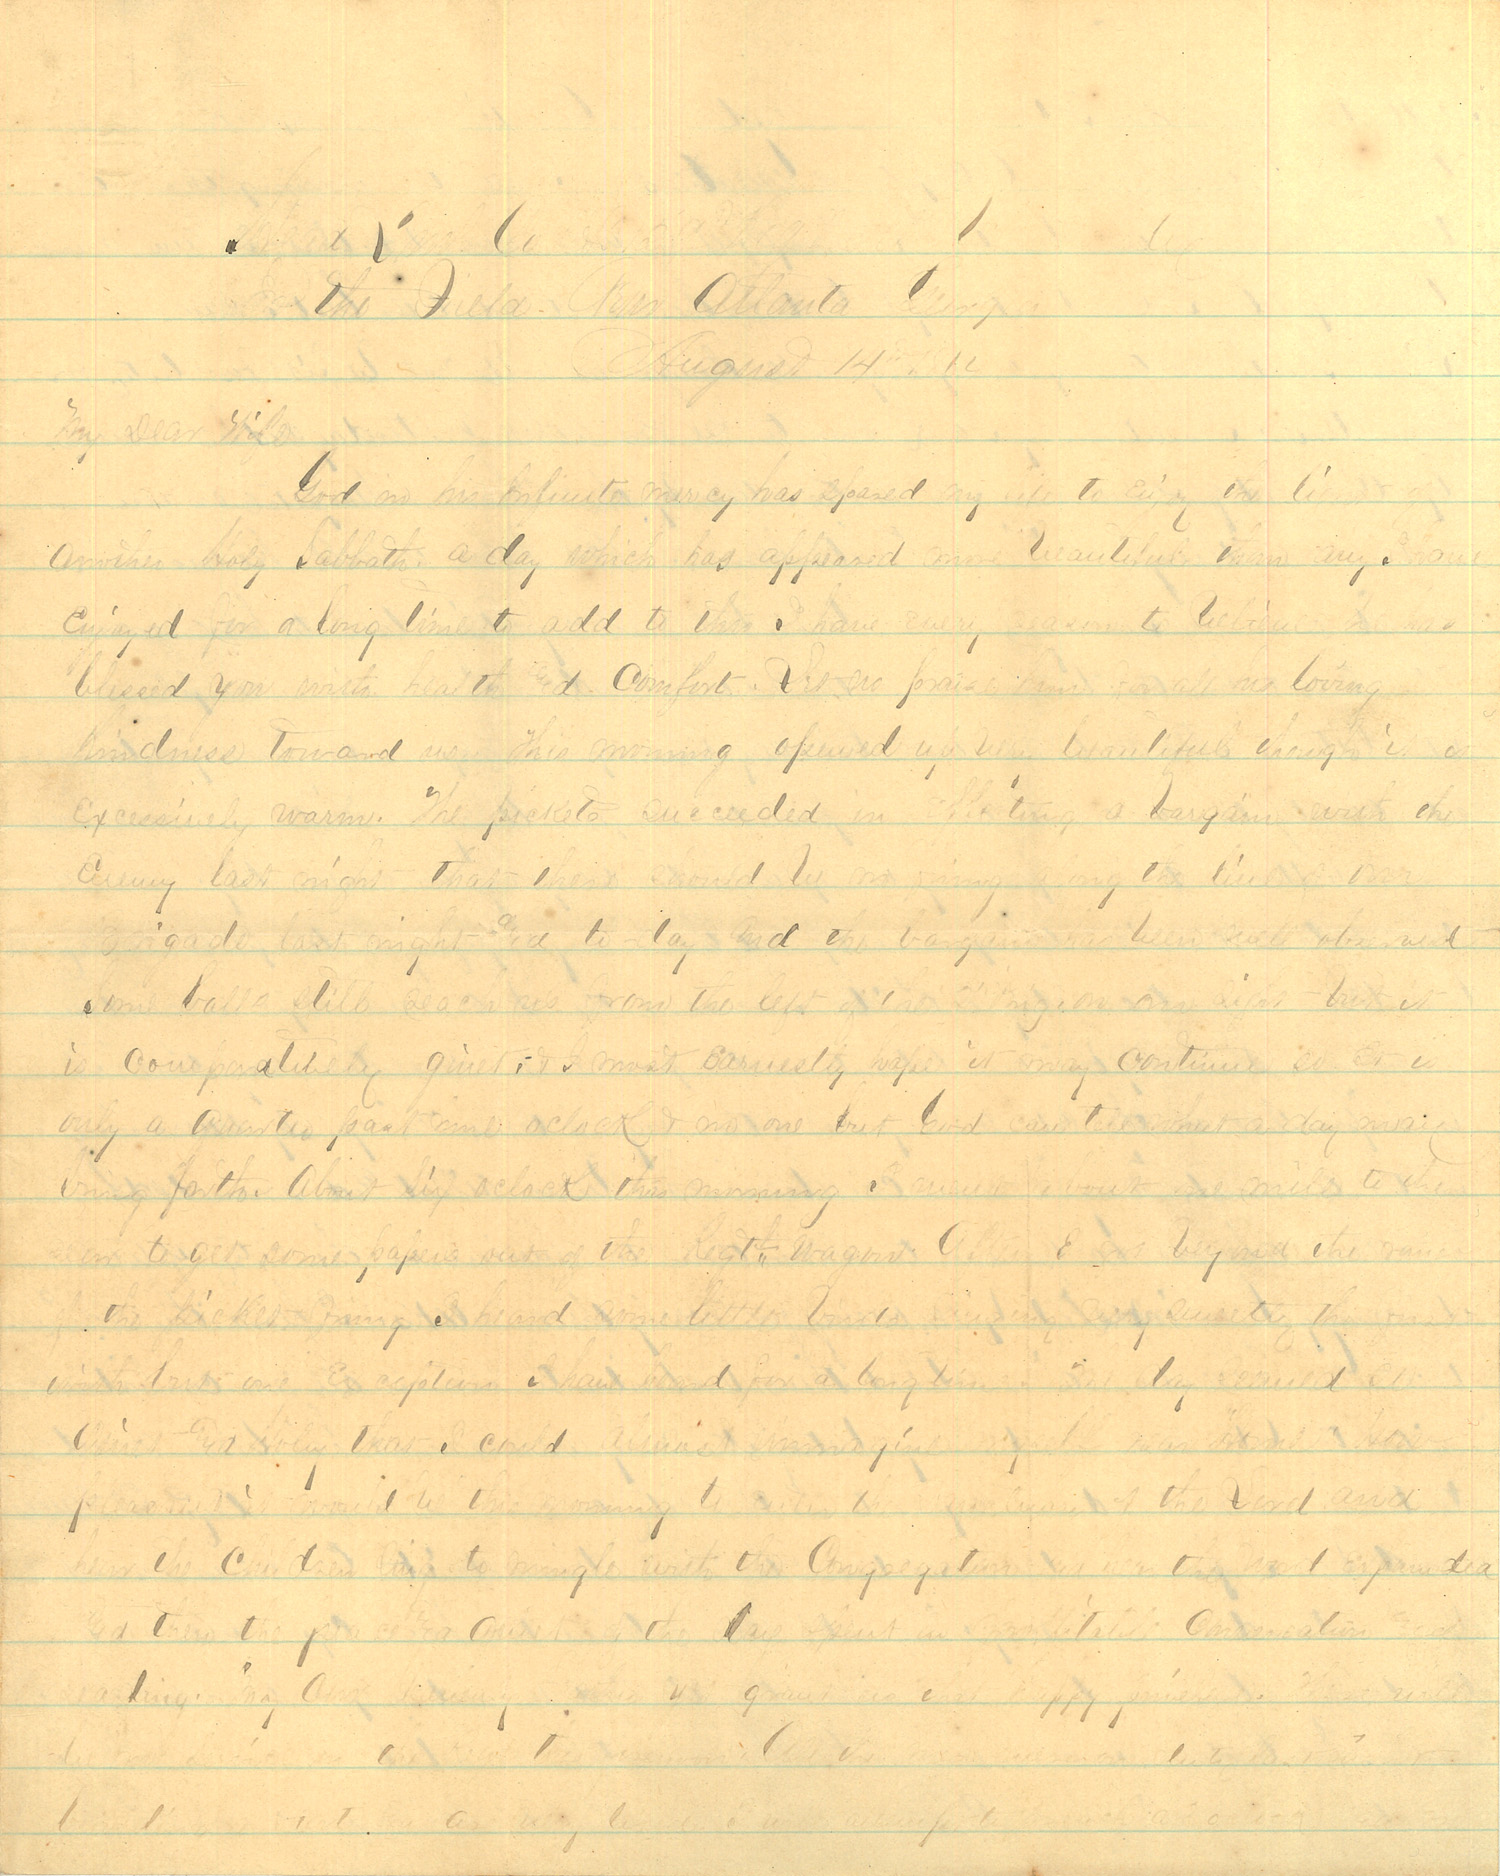 Joseph Culver Letter, August 14, 1864, Page 1